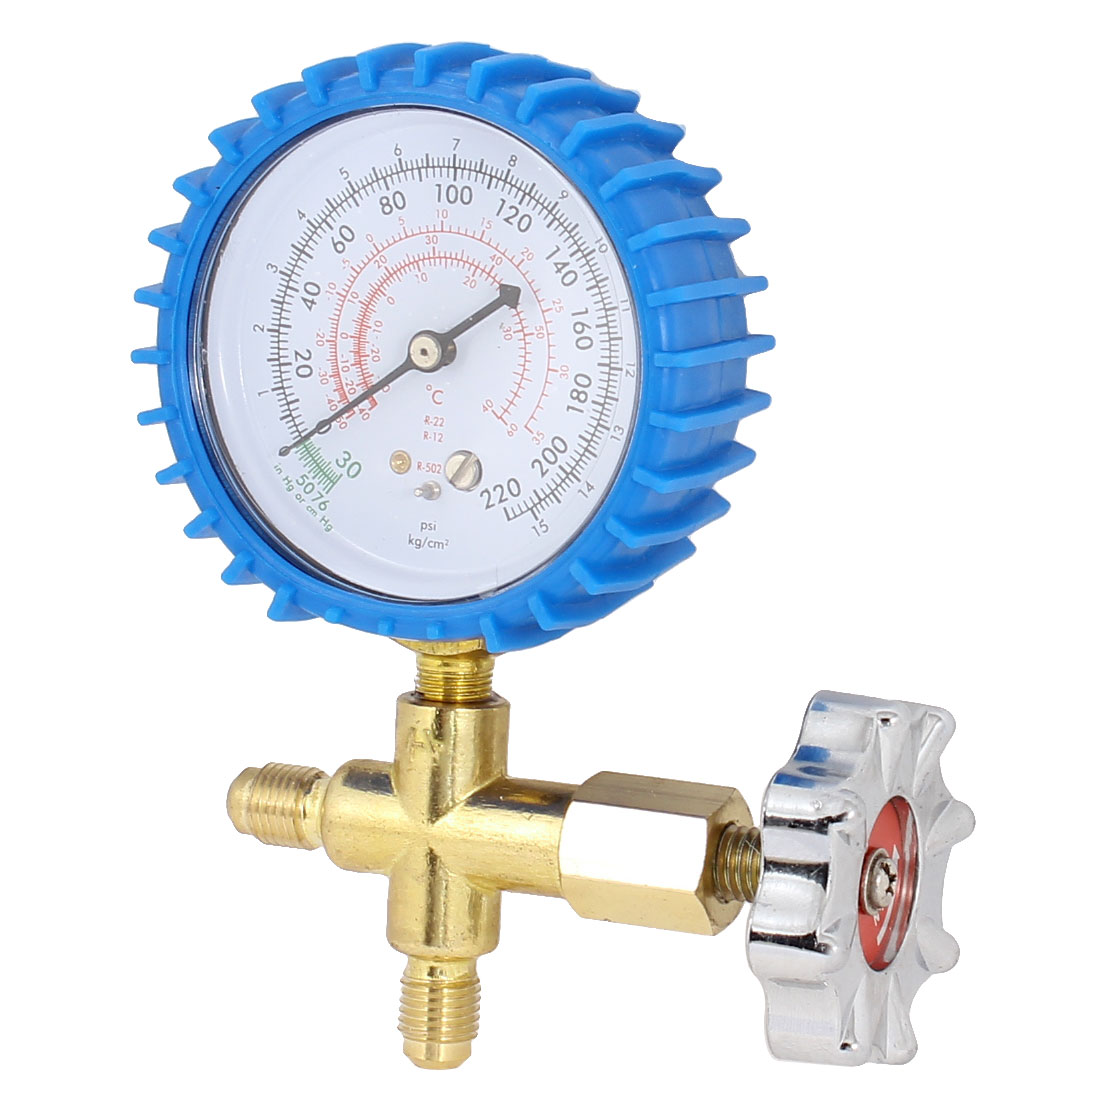 Air Conditioner Blue Shell 3-Way Valve 1/4PT Thread Single Manifold Gauge 220psi